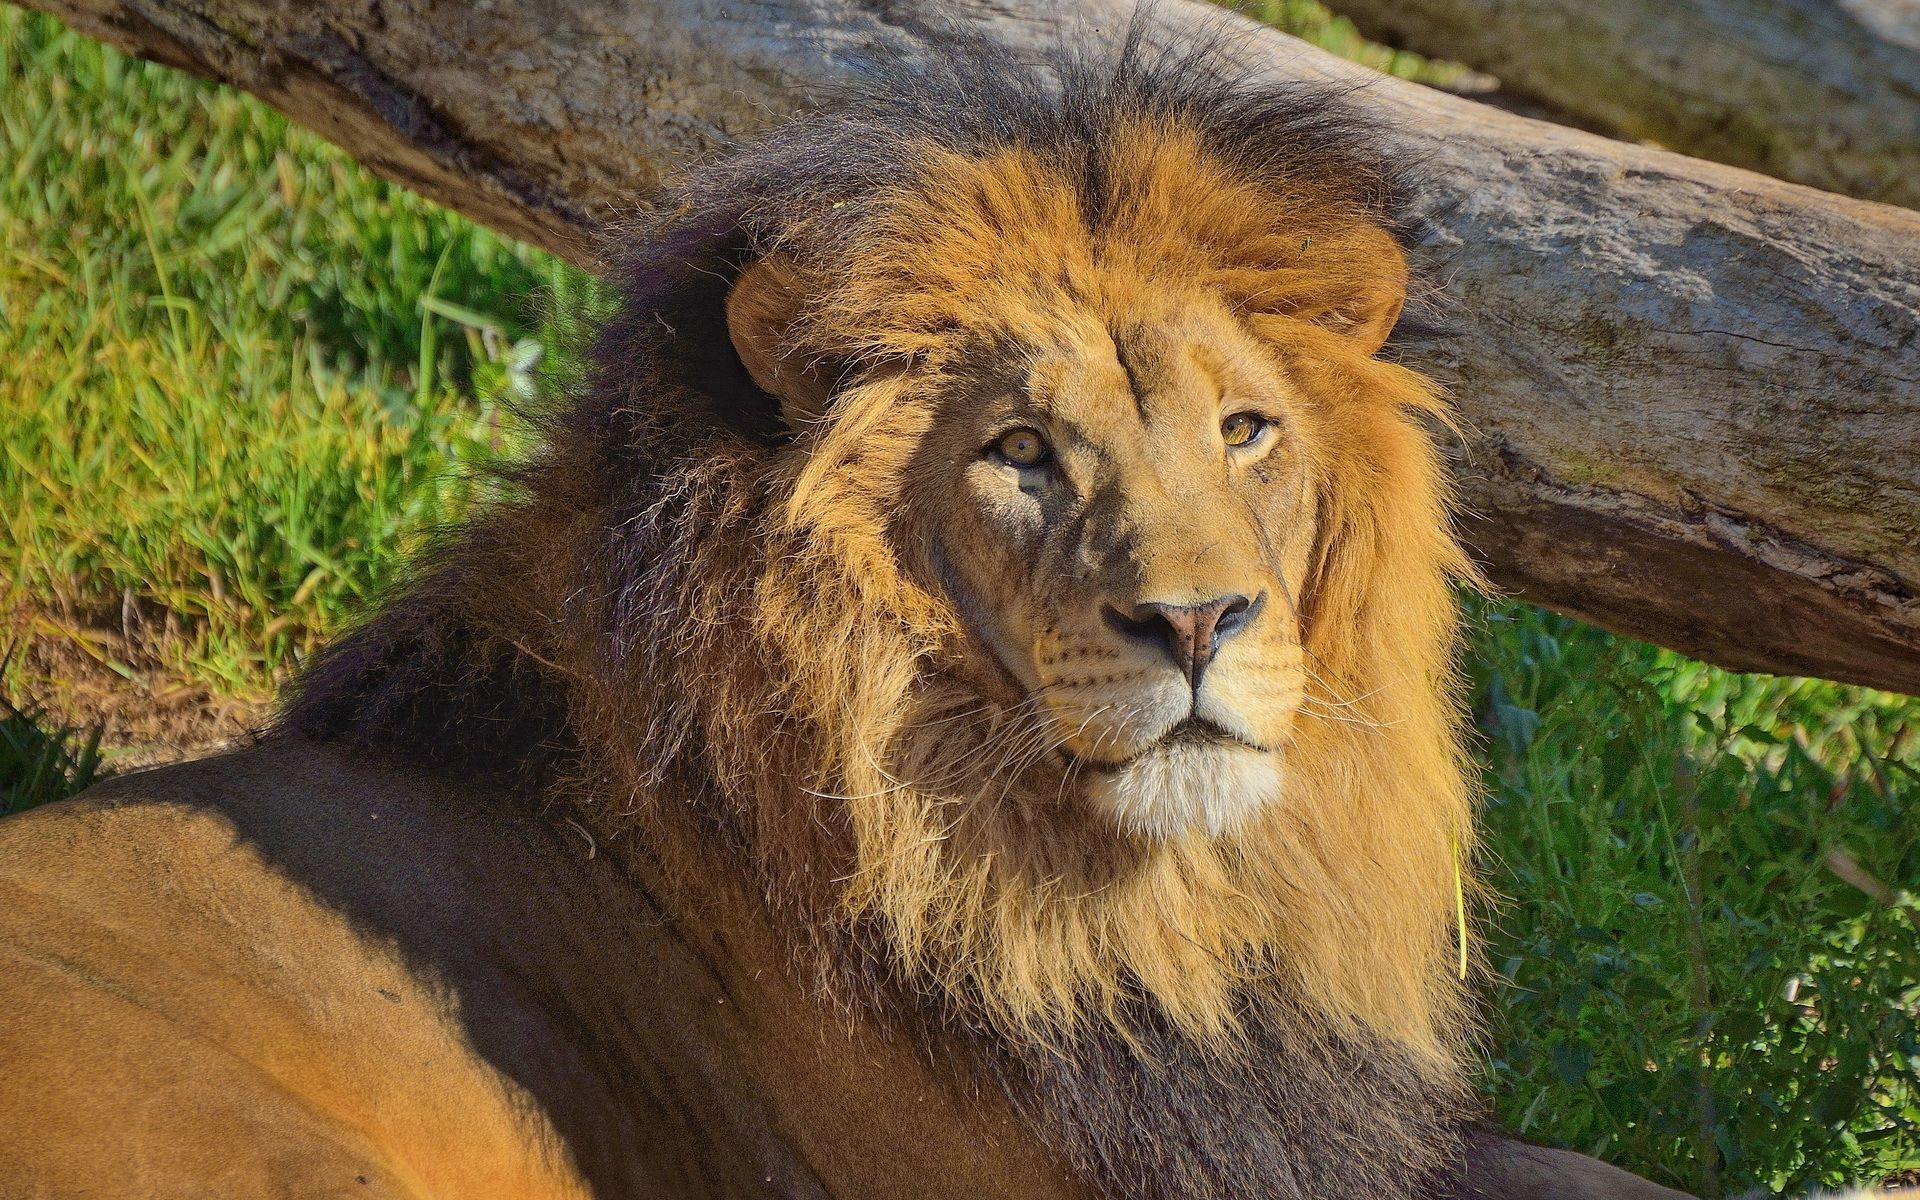 118039 download wallpaper Animals, Big Cat, Lion, Mane, Grass screensavers and pictures for free